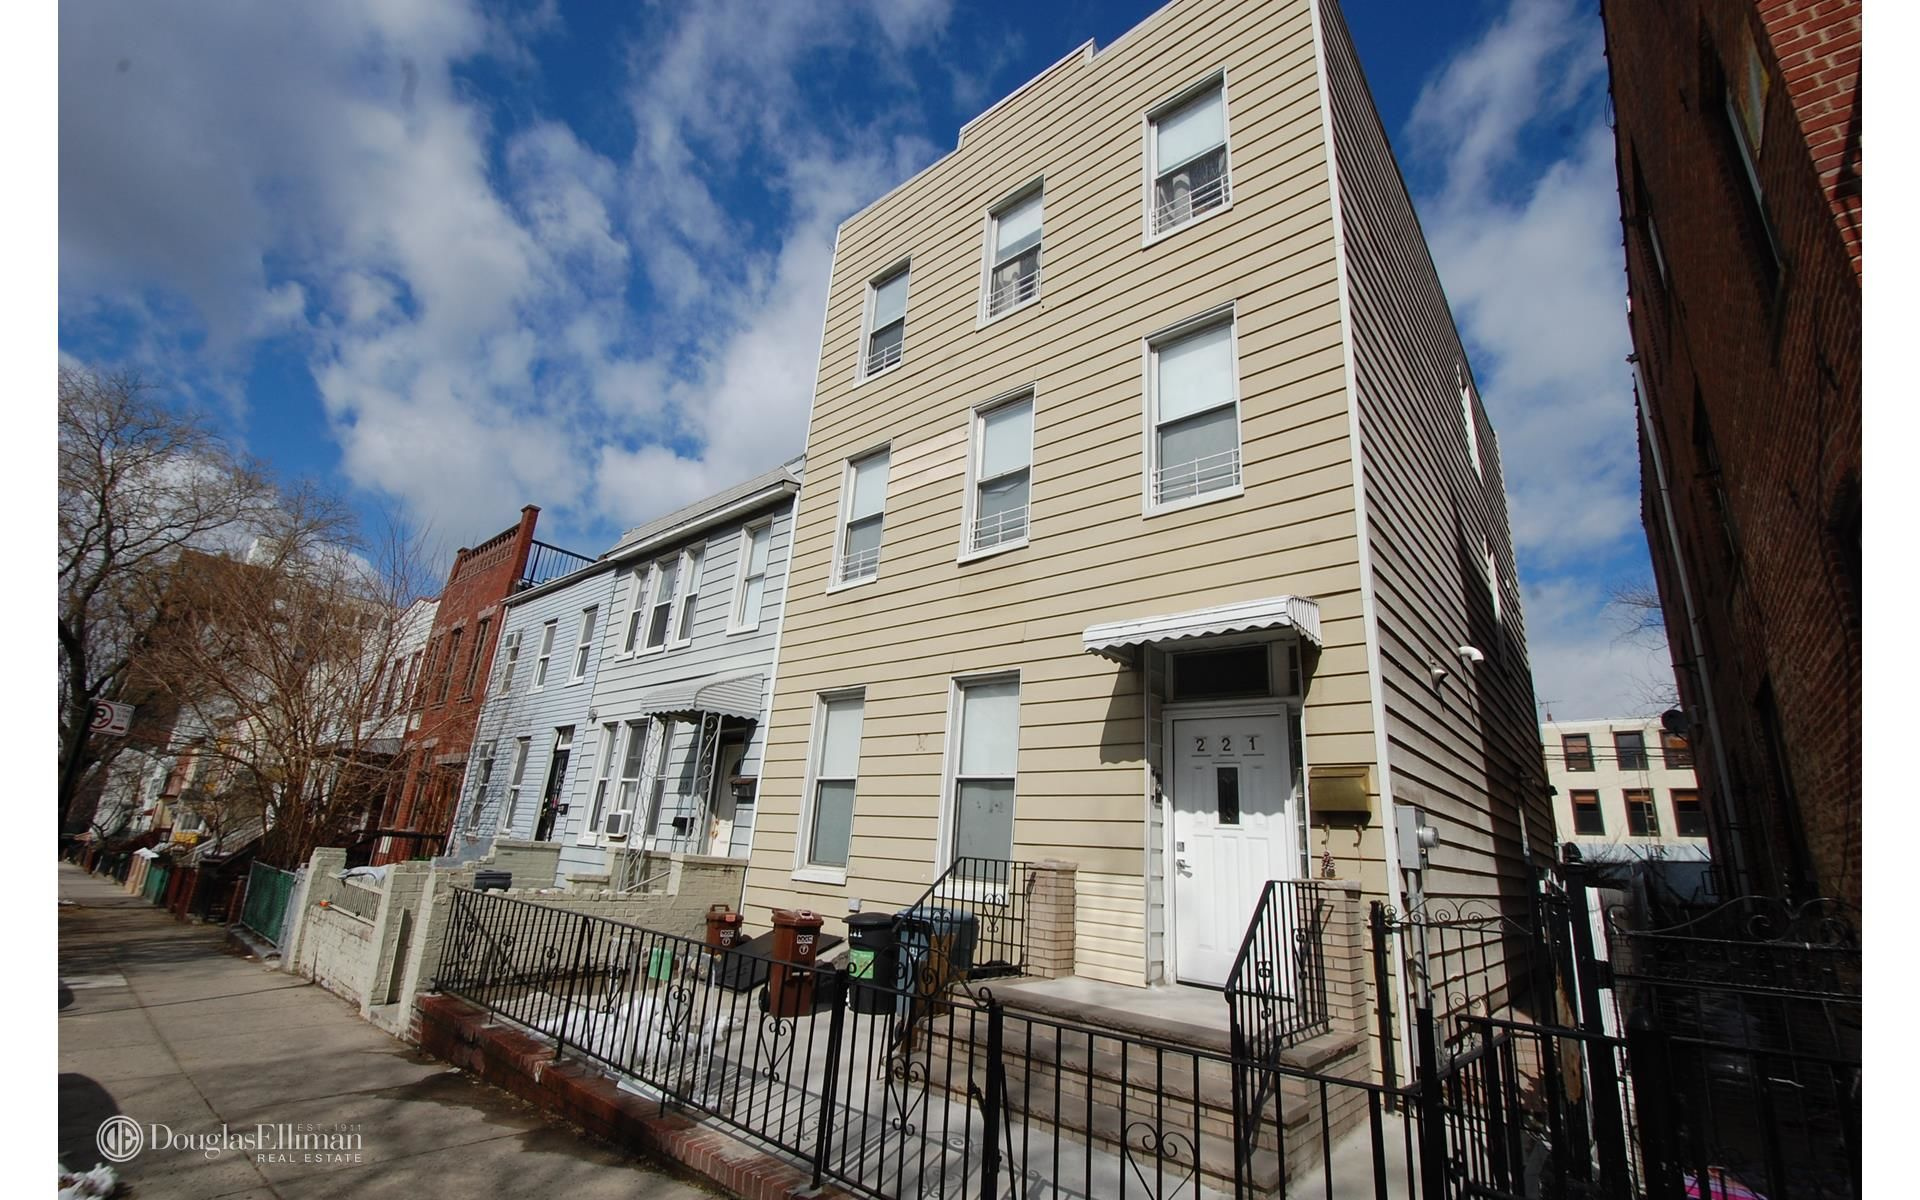 221 19th St Photo 2 - ELLIMAN-3185967